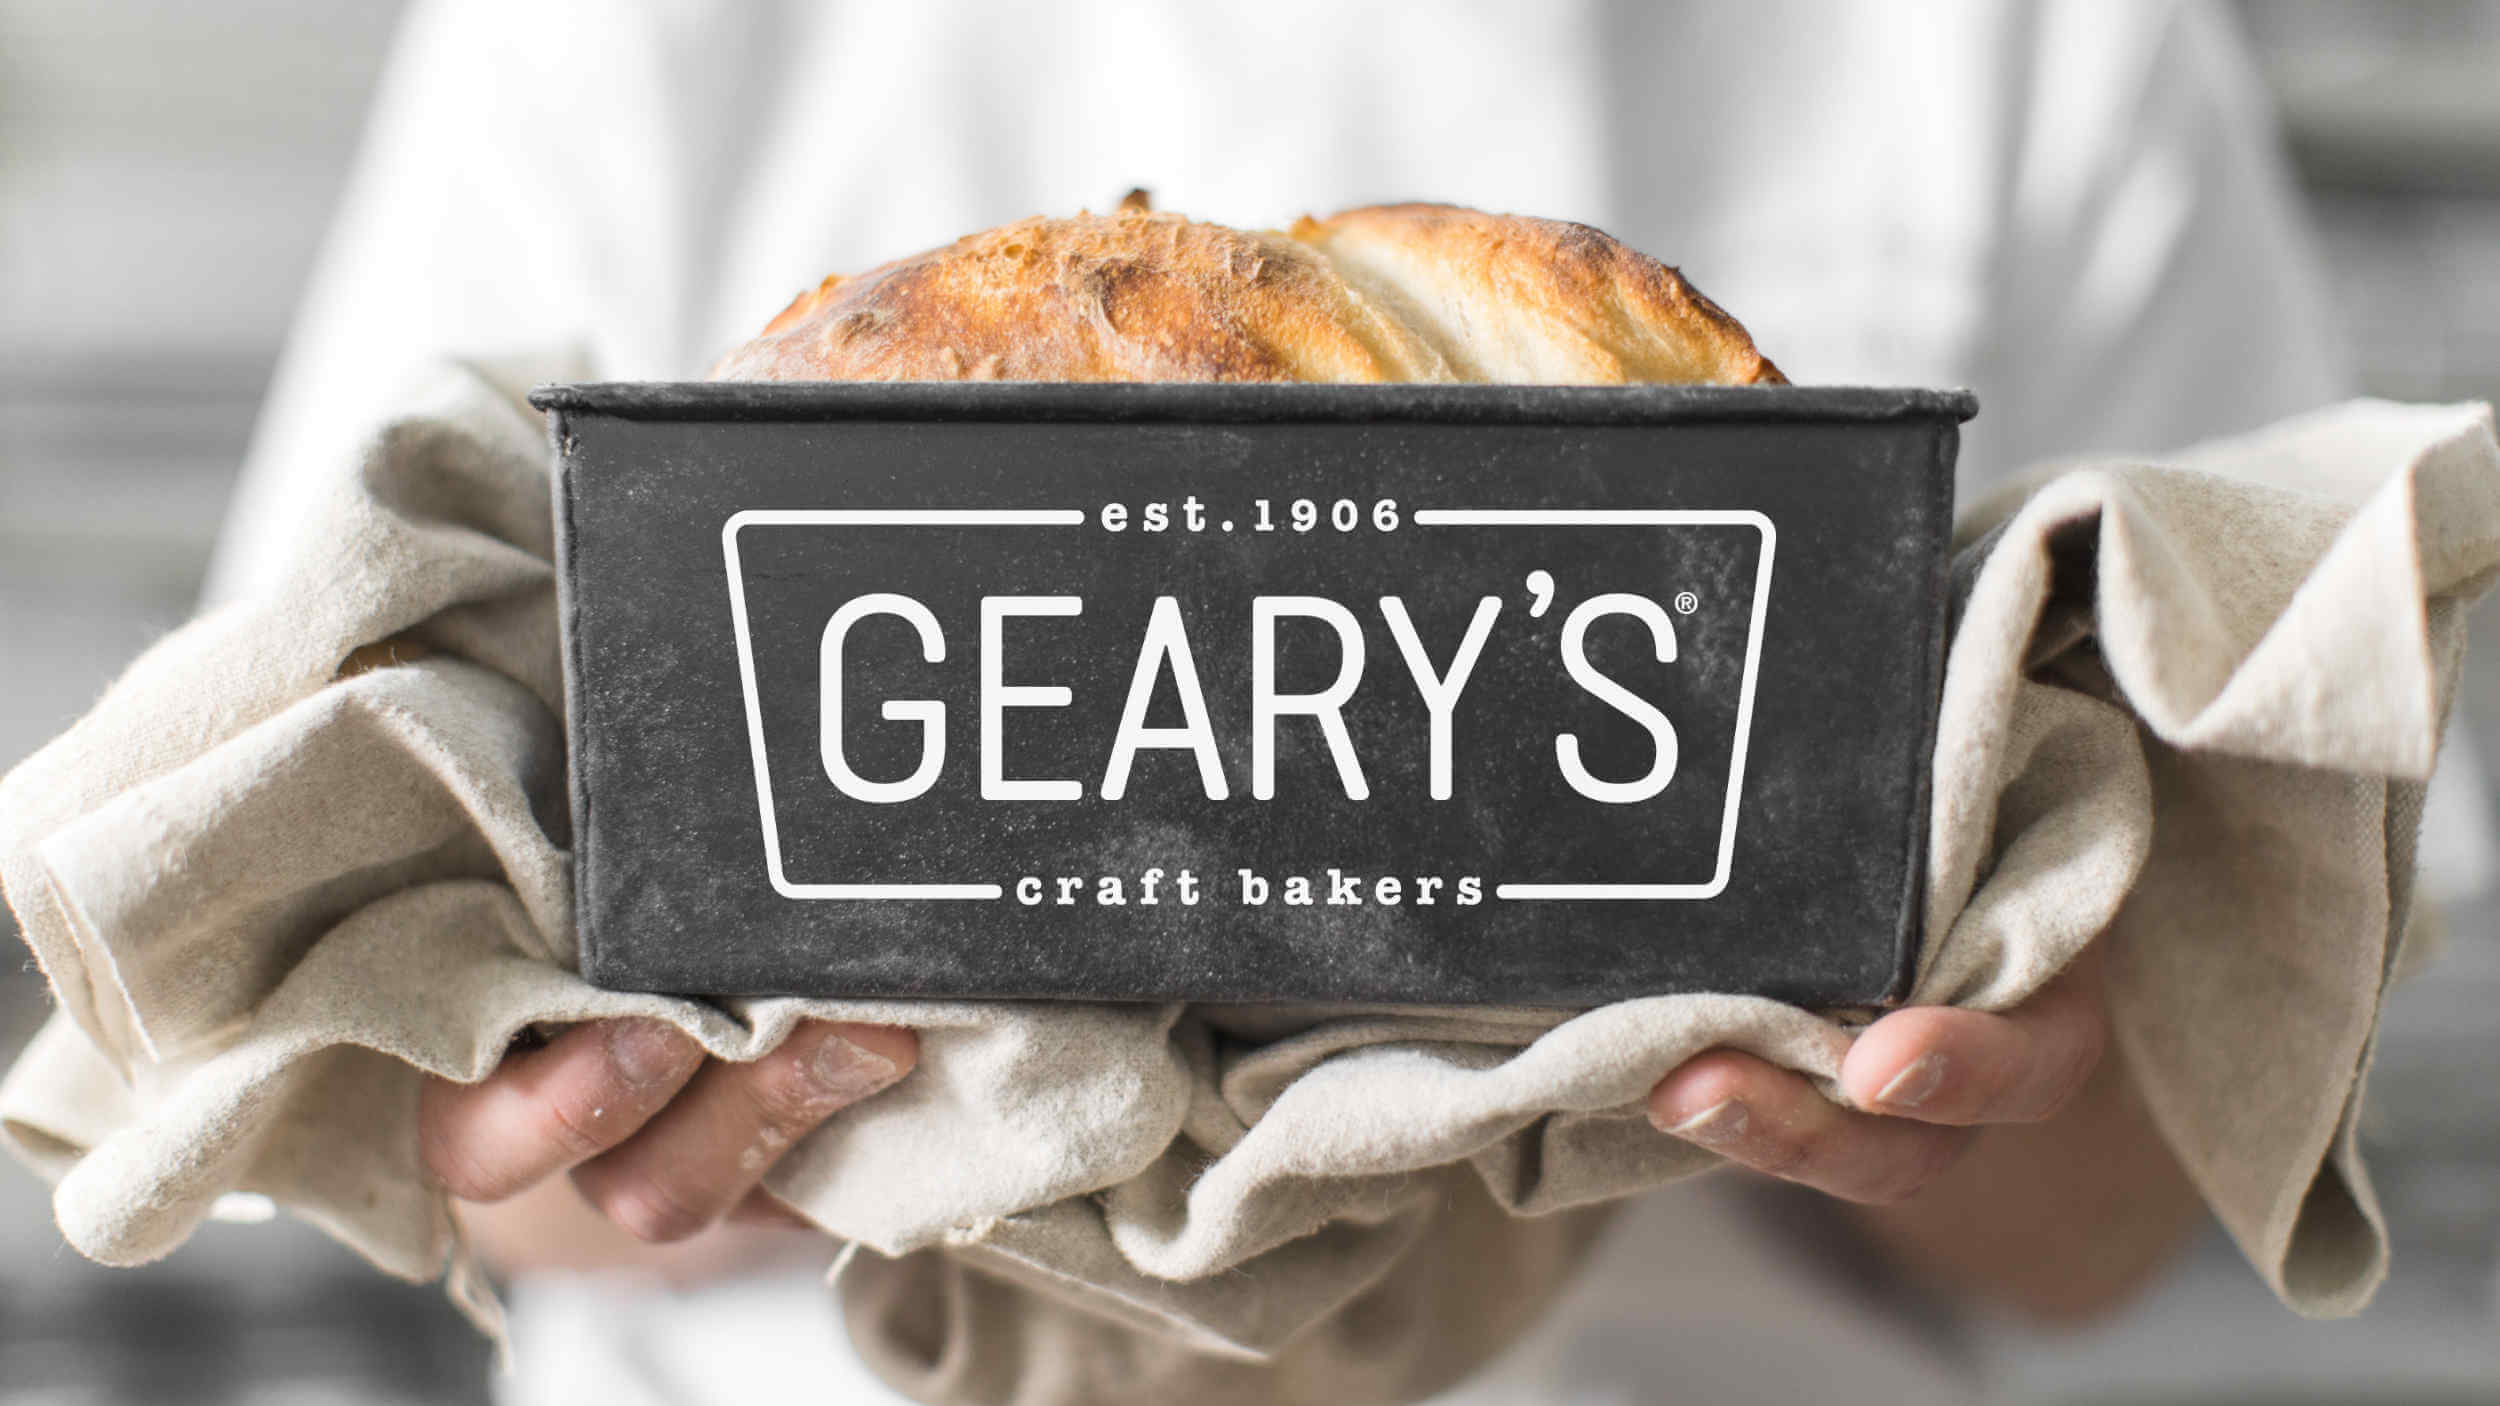 Geary's rebrands and launches a new website